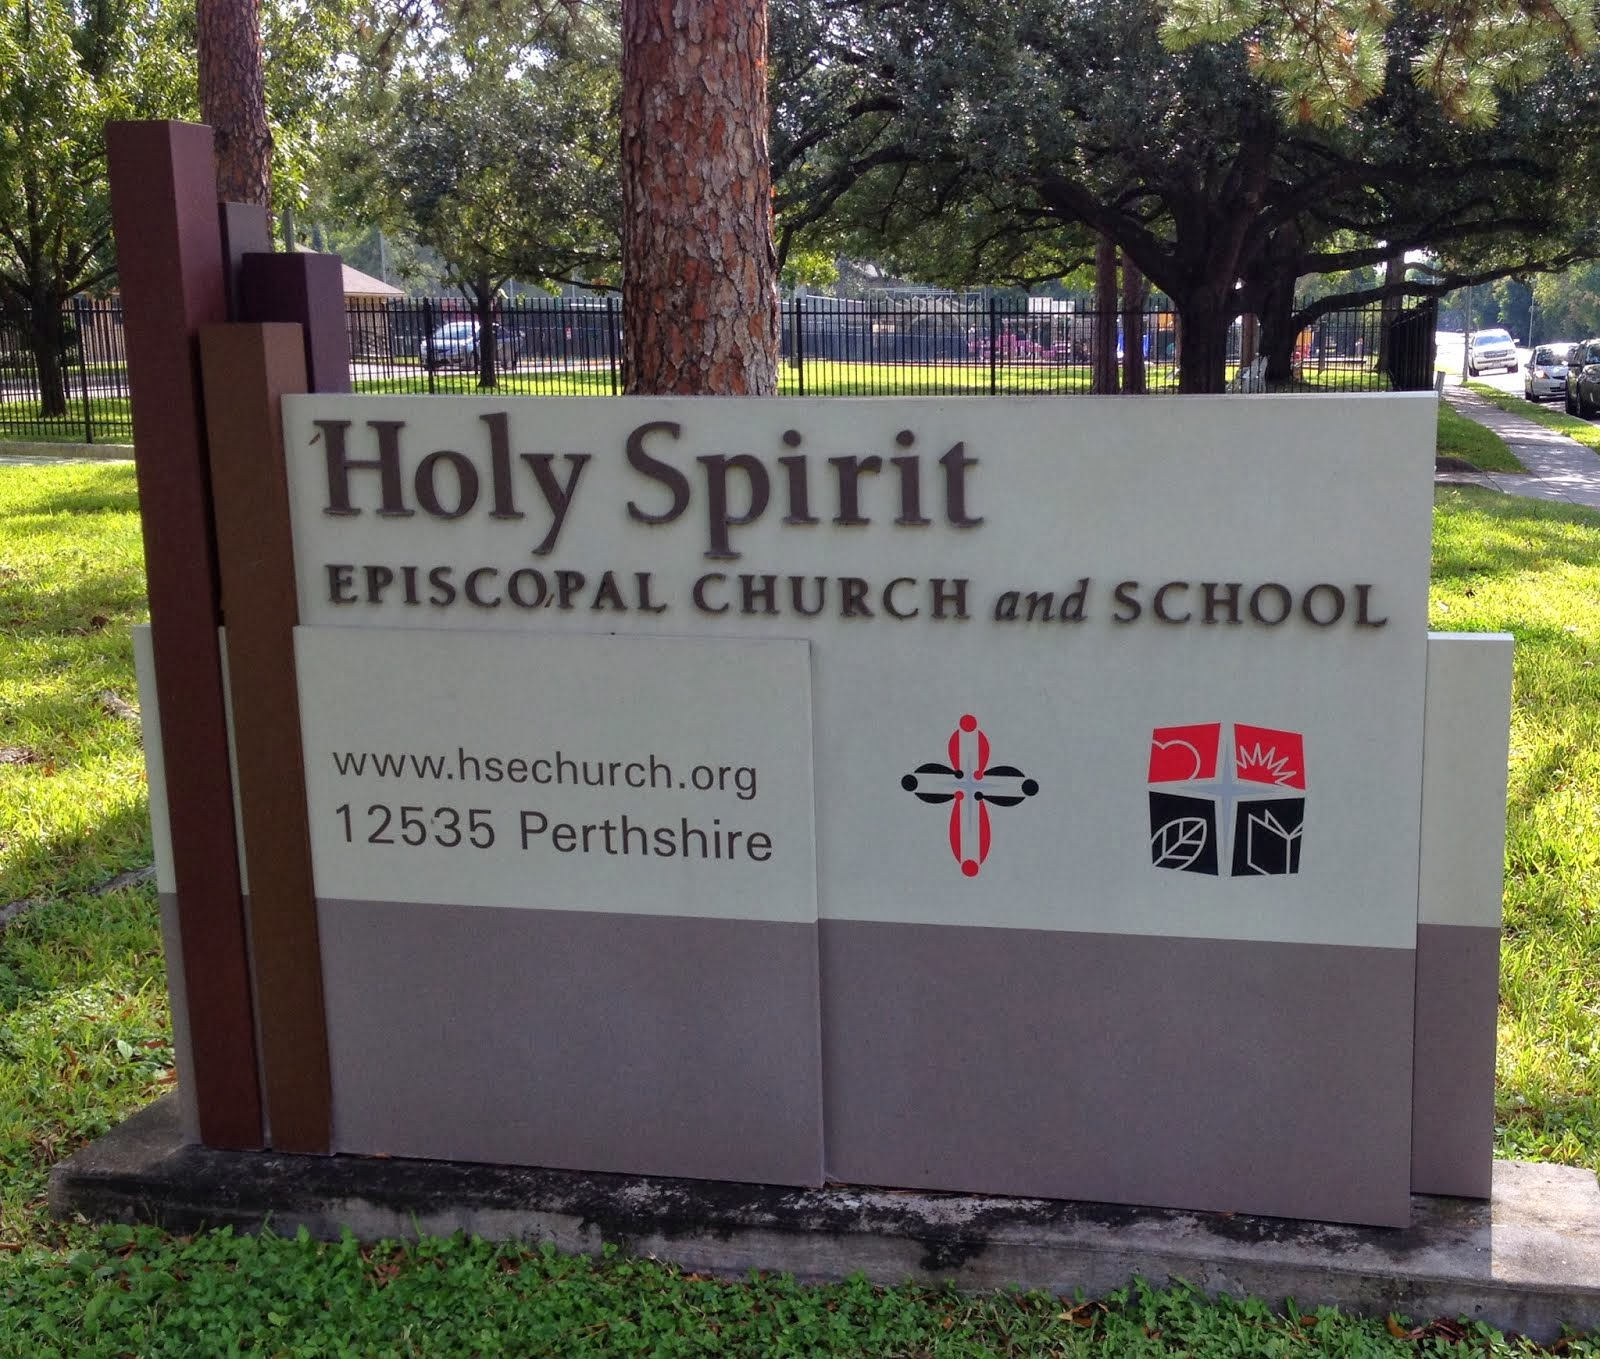 Holy Spirit Episcopal Church & School